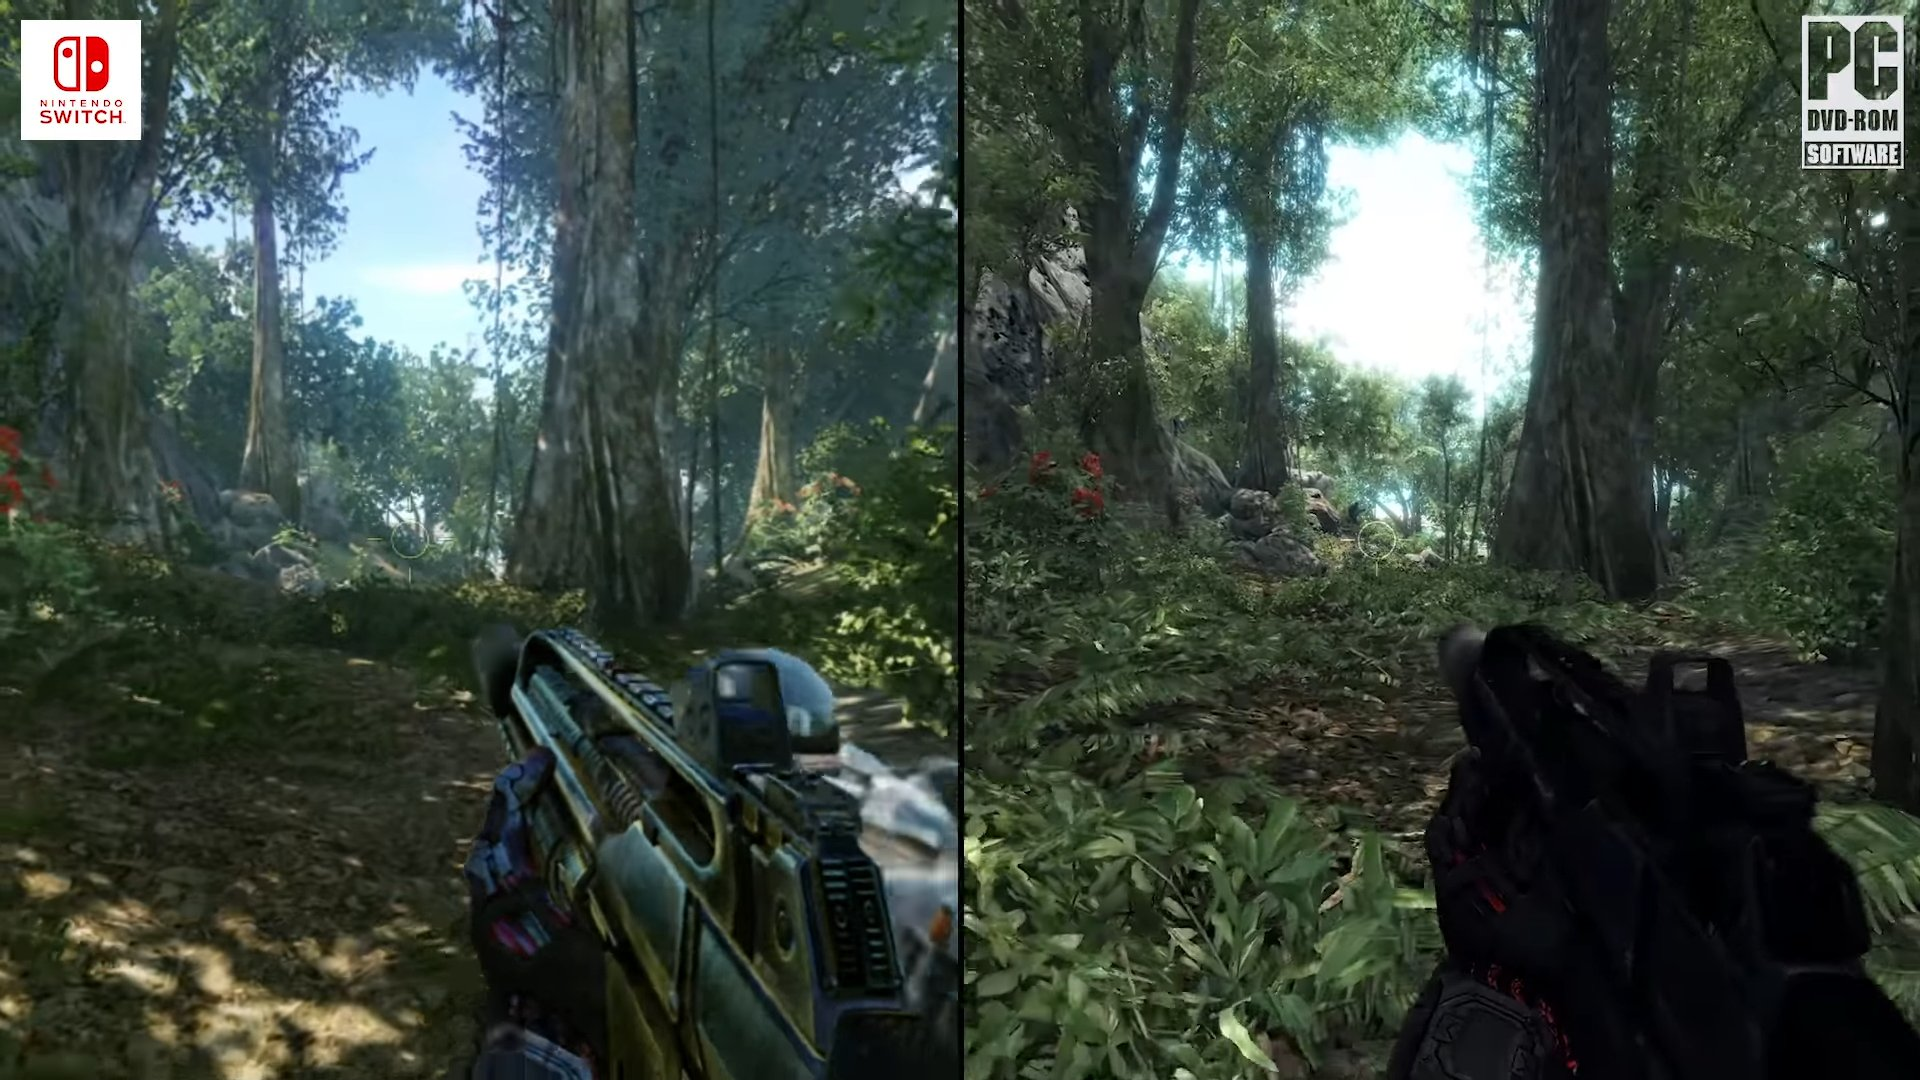 173417-Crysis%20Remastered%20on%20Switch